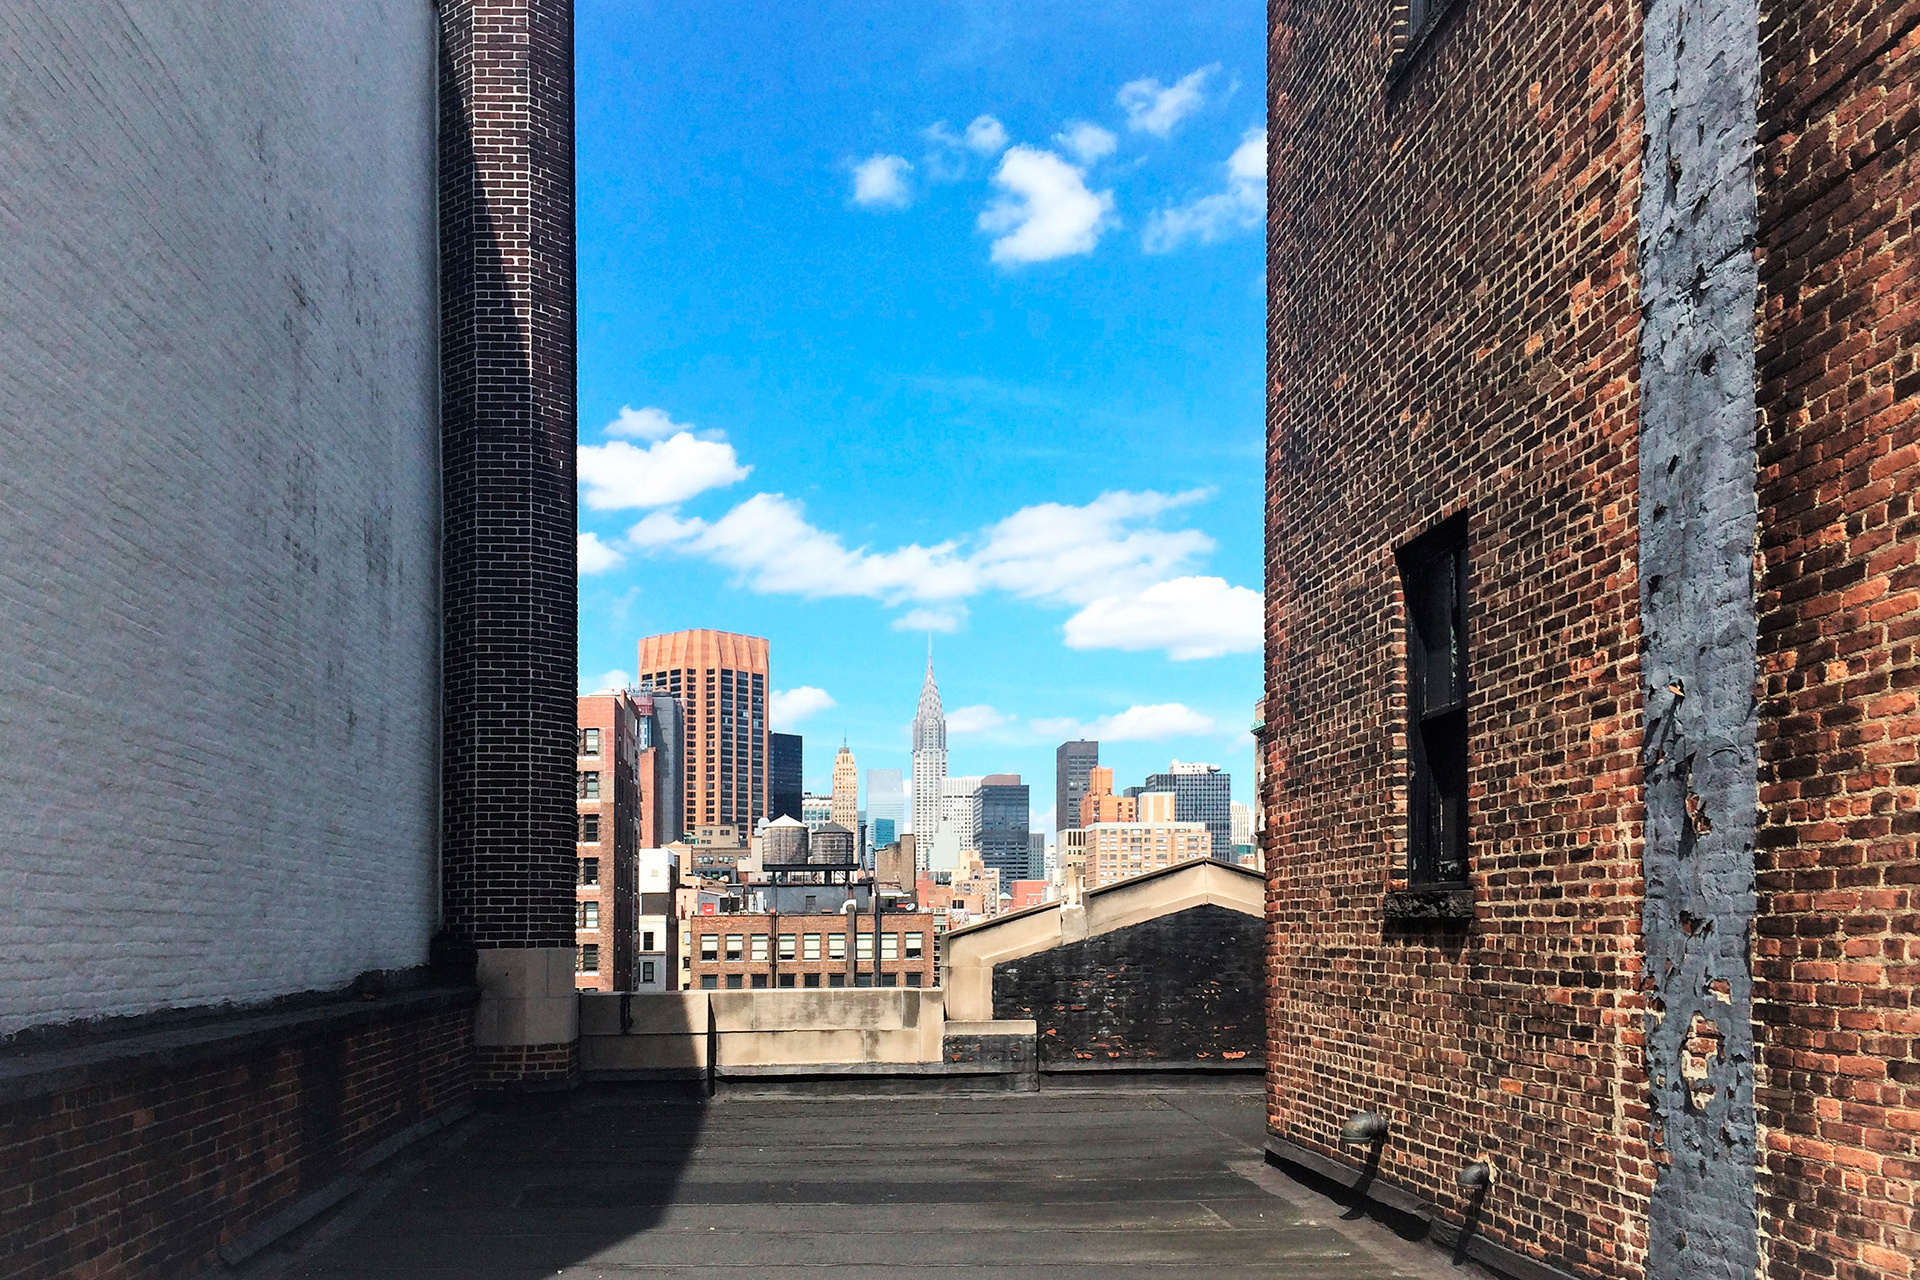 Rooftop space at 114 East 25th Street before the building renovation